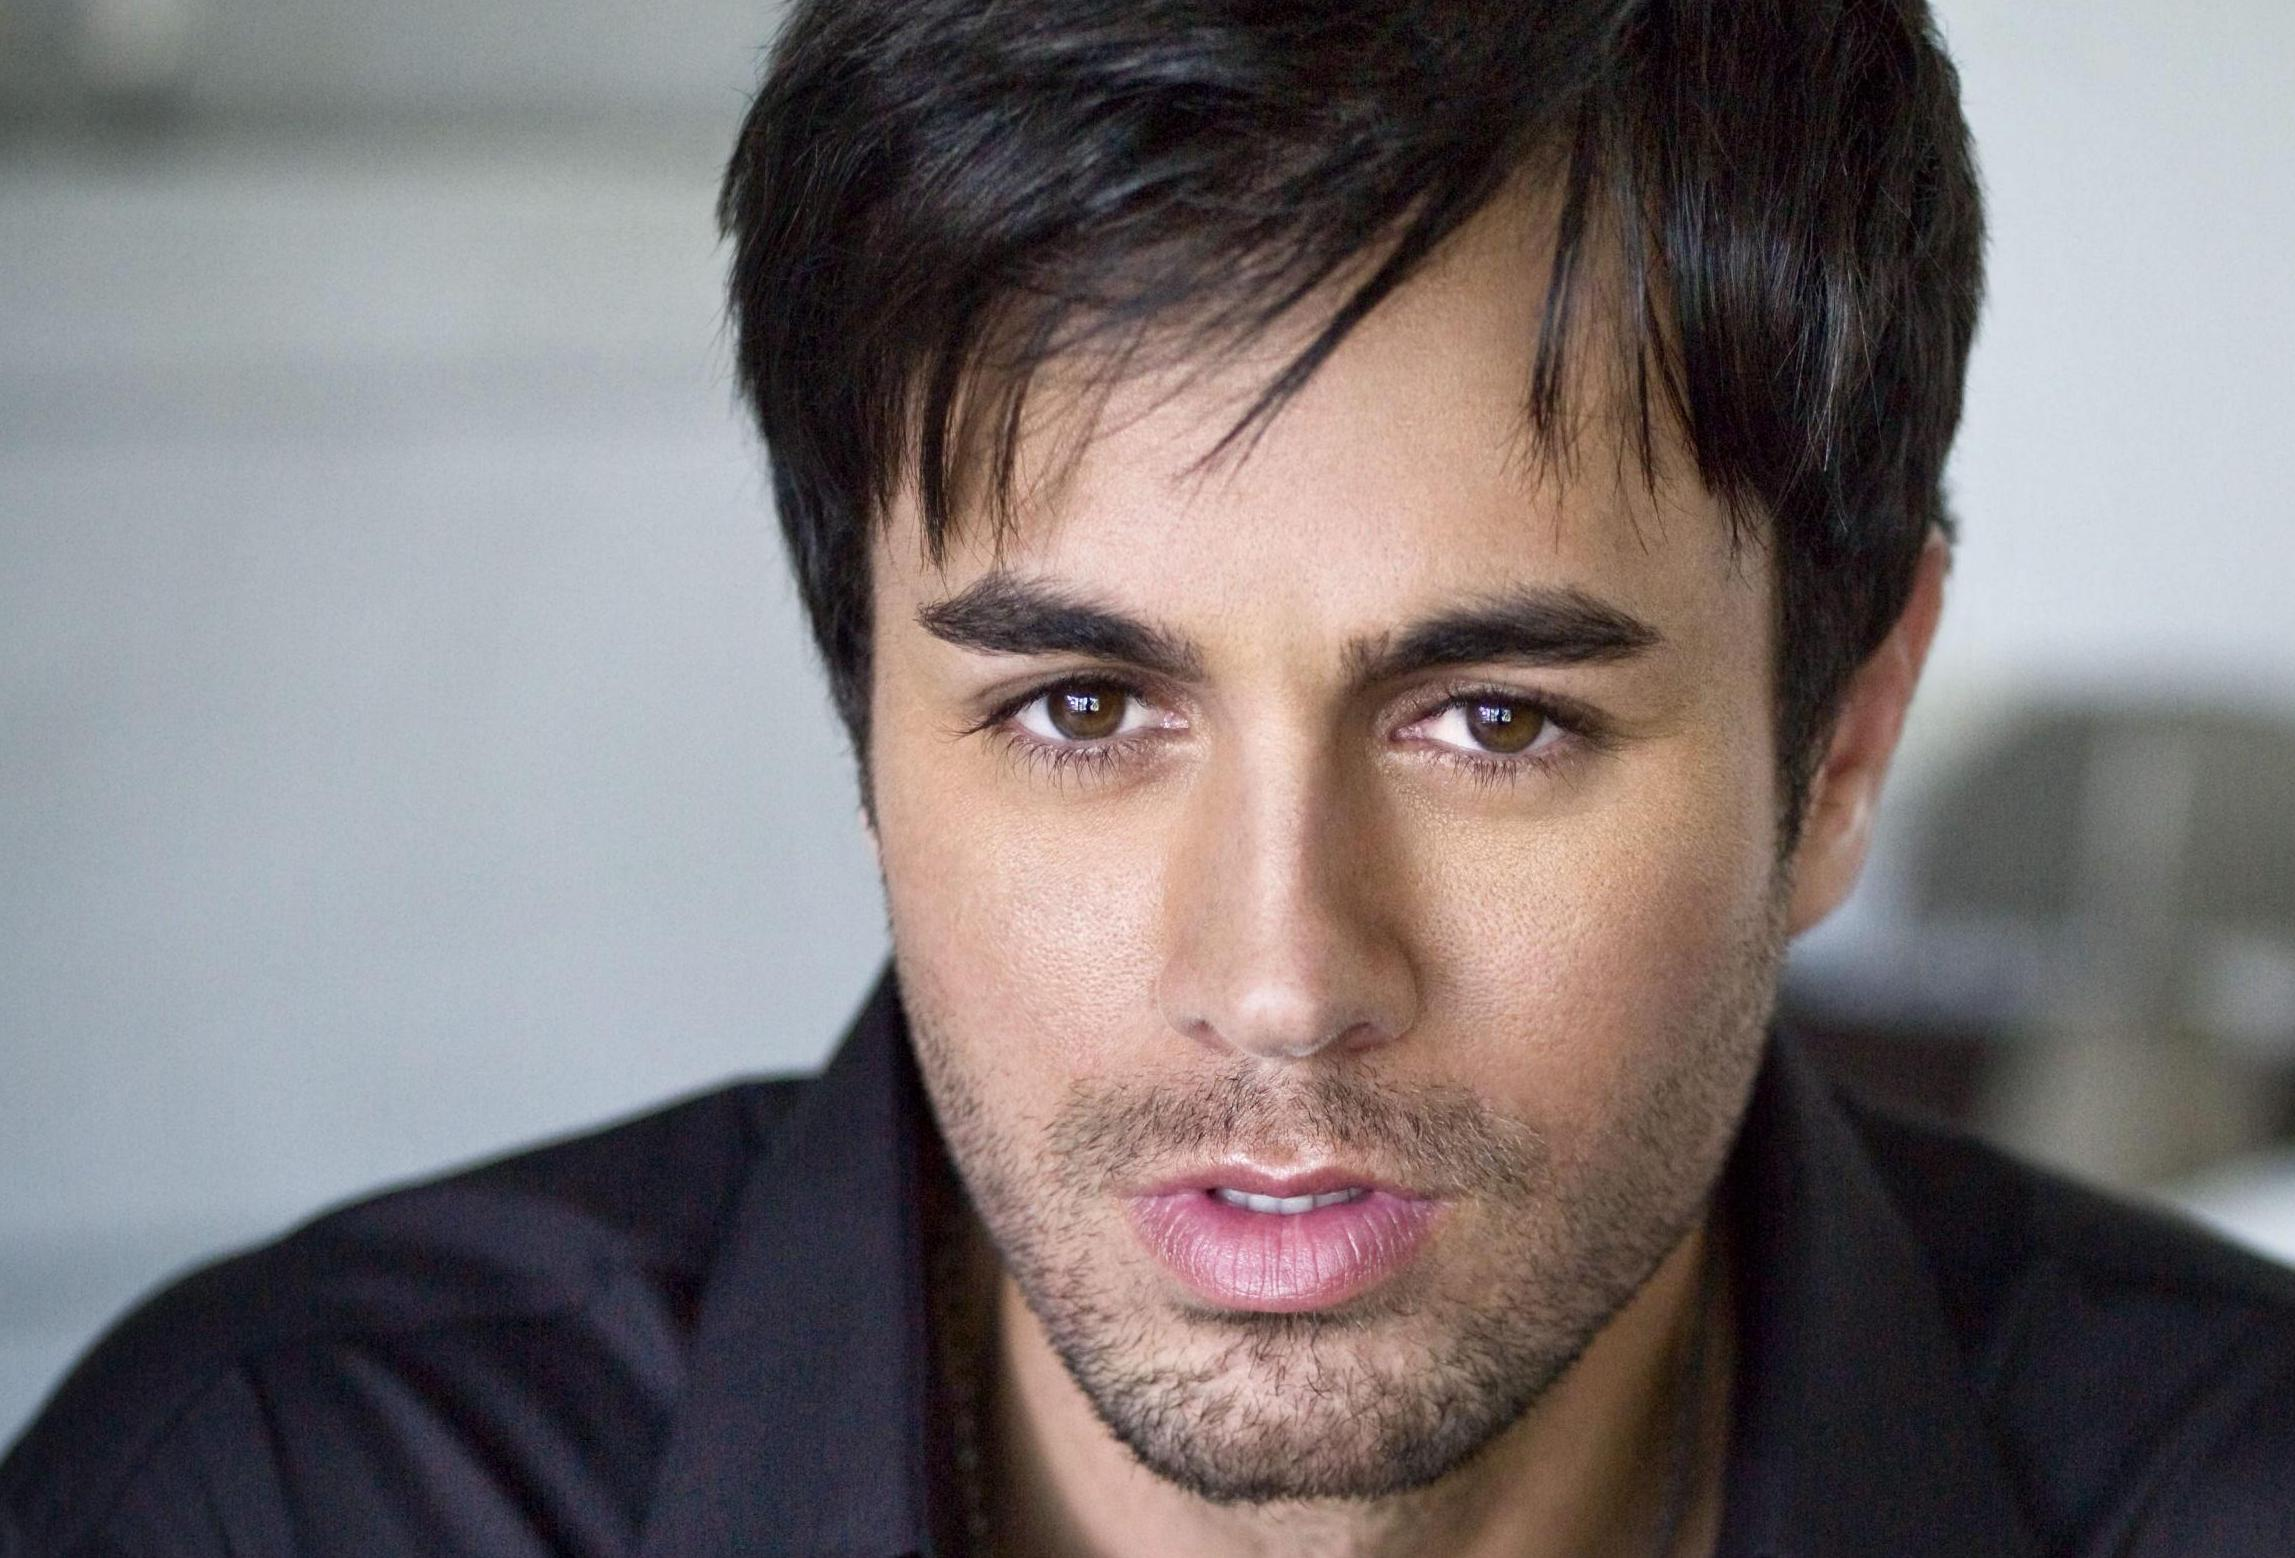 Miss You - Enrique Iglesias feat. Nadiya